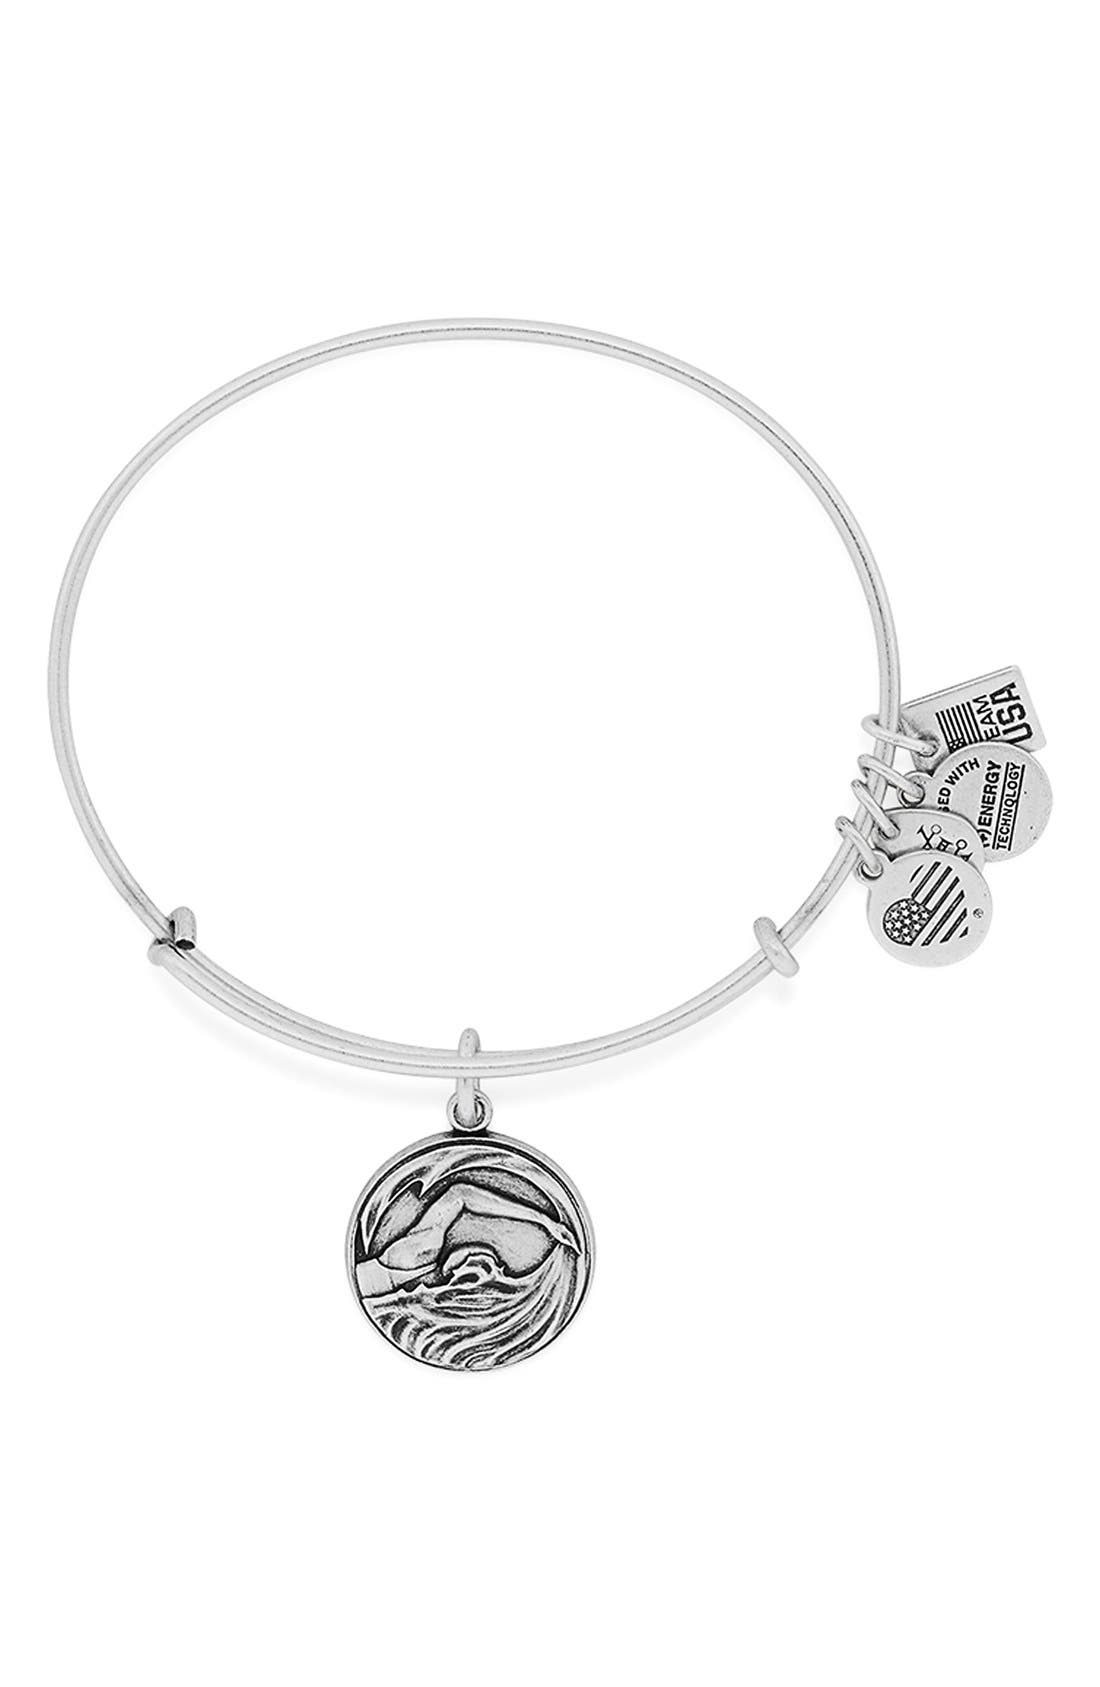 'Team USA - Swimming' Bangle Bracelet,                             Main thumbnail 1, color,                             040